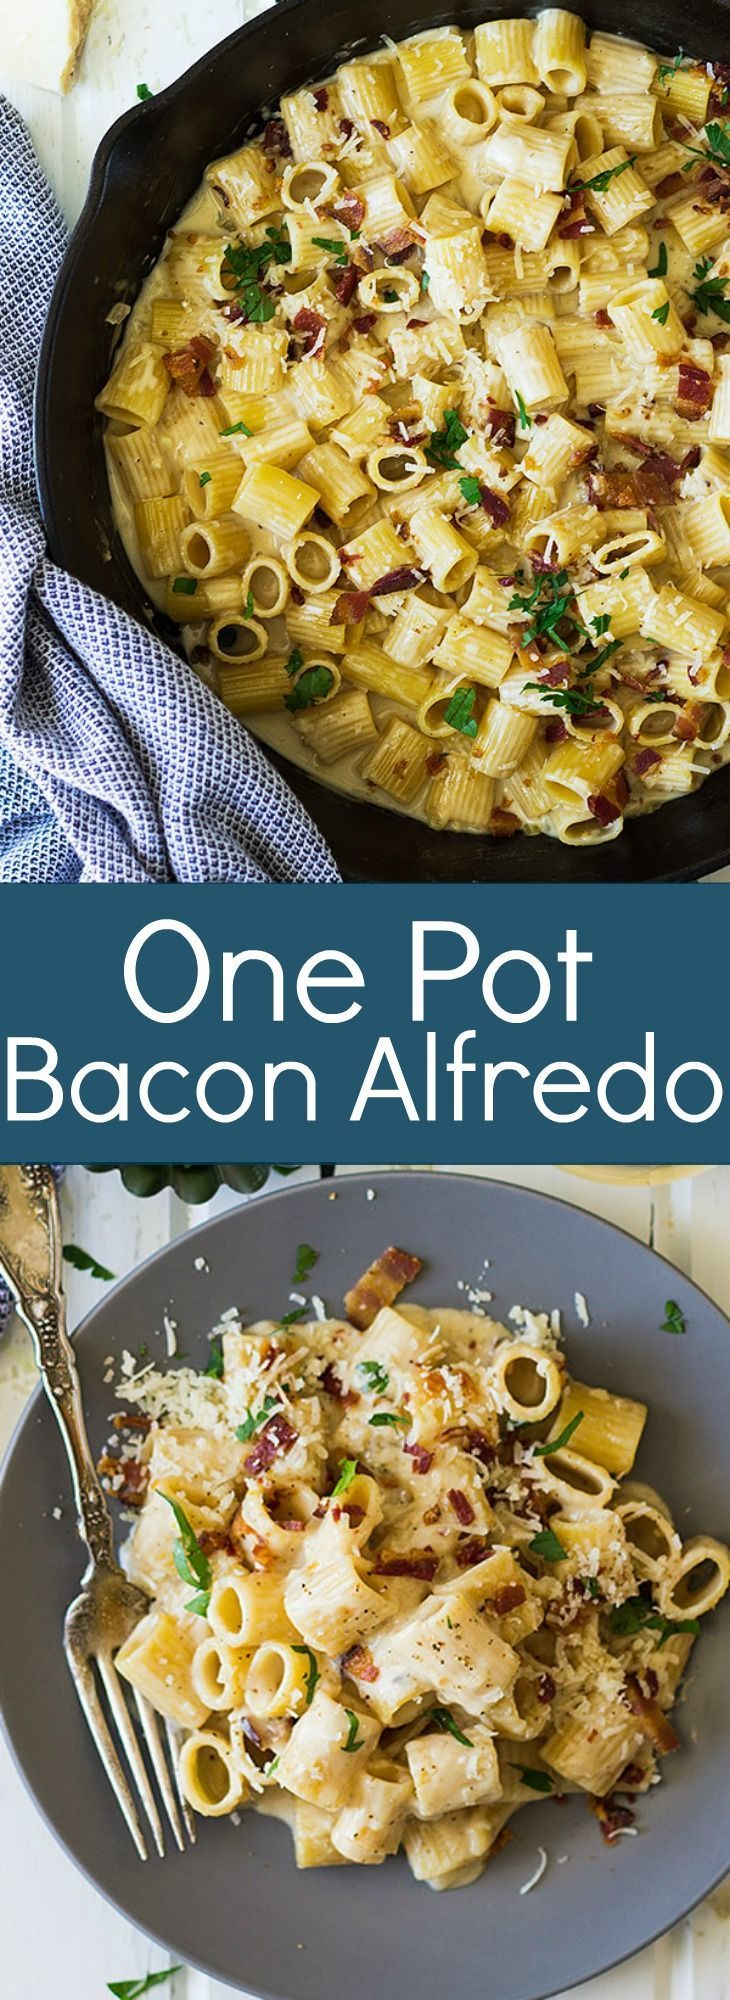 This One Pot Bacon Alfredo is a quick and easy weeknight meal that's full of flavor! | http://www.countrysidecravings.com